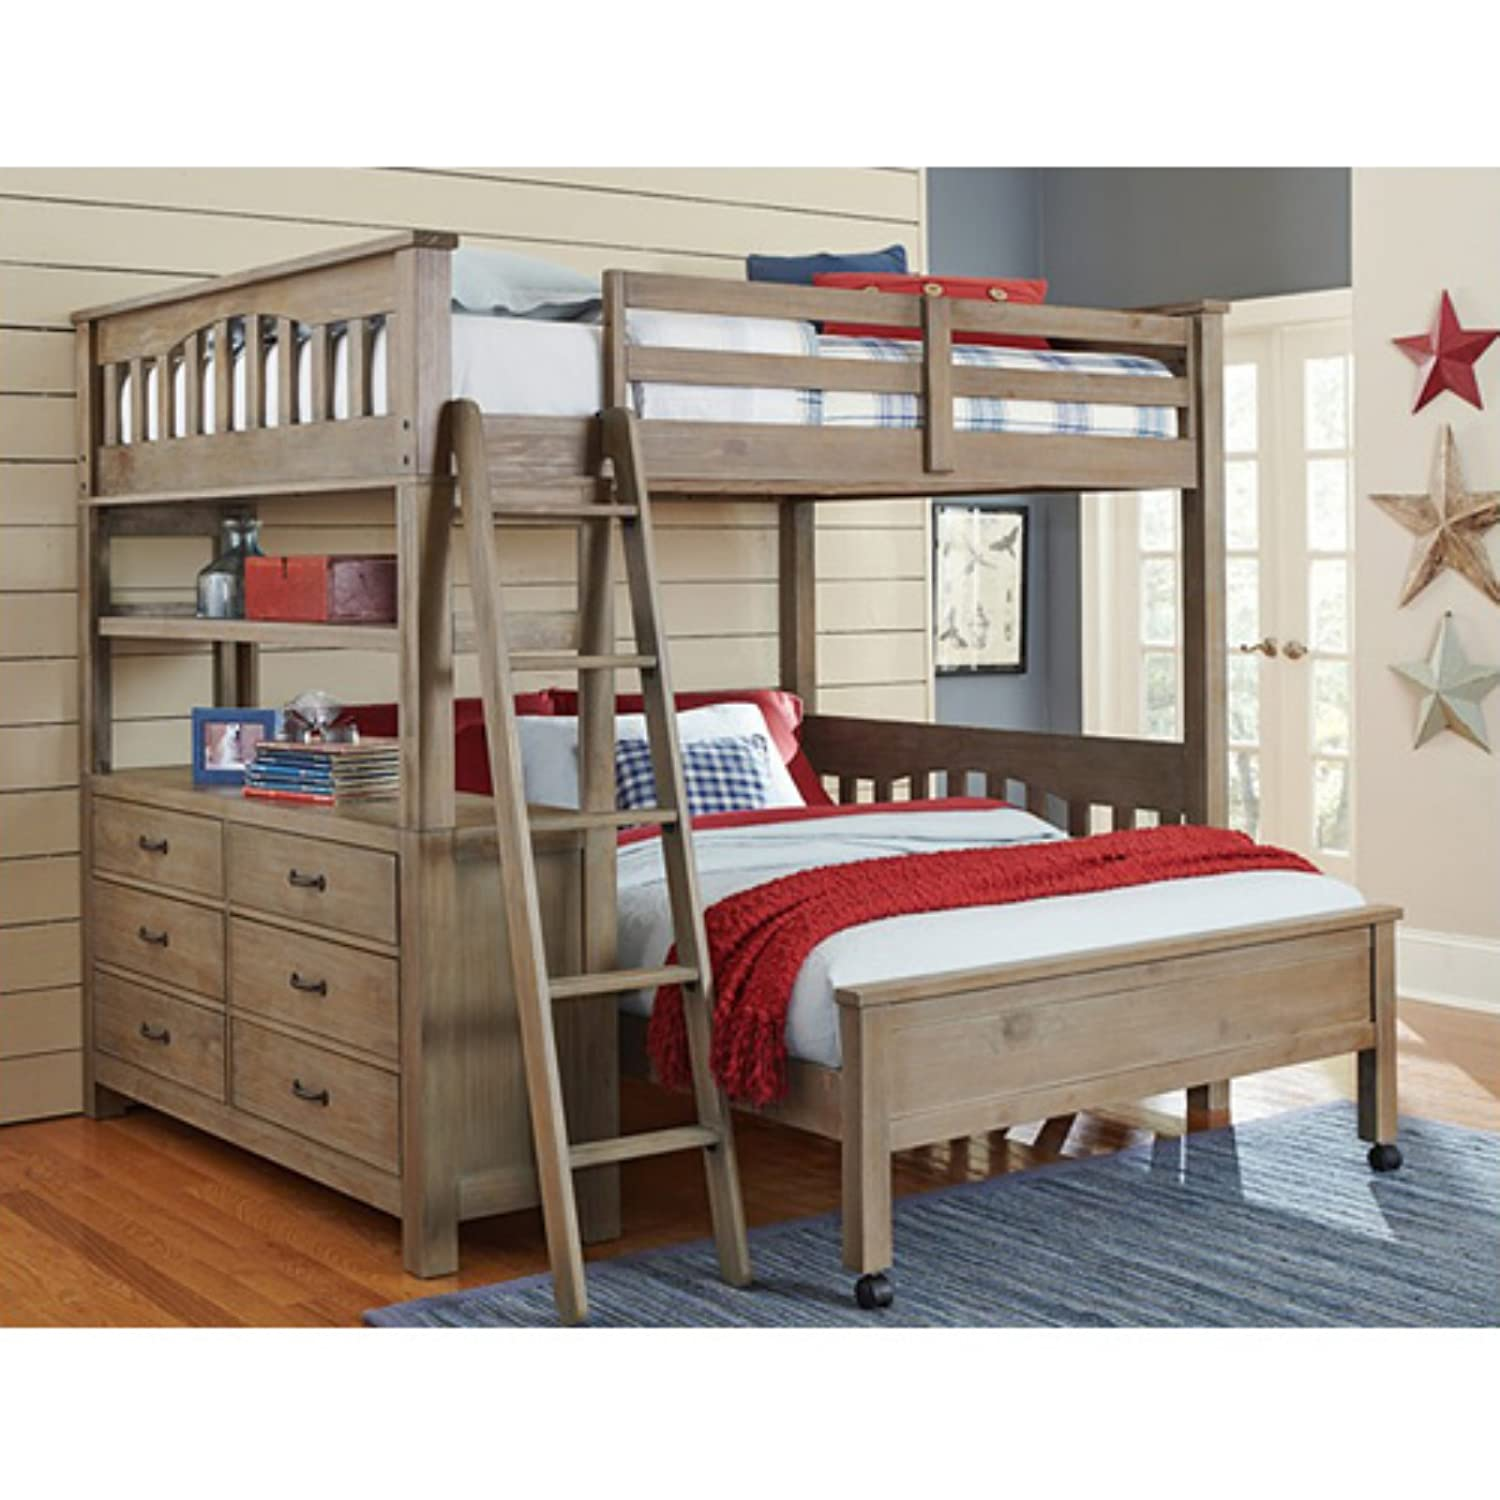 Amazoncom Ne Kids Highlands Full Loft Bed With Full Lower Bed In